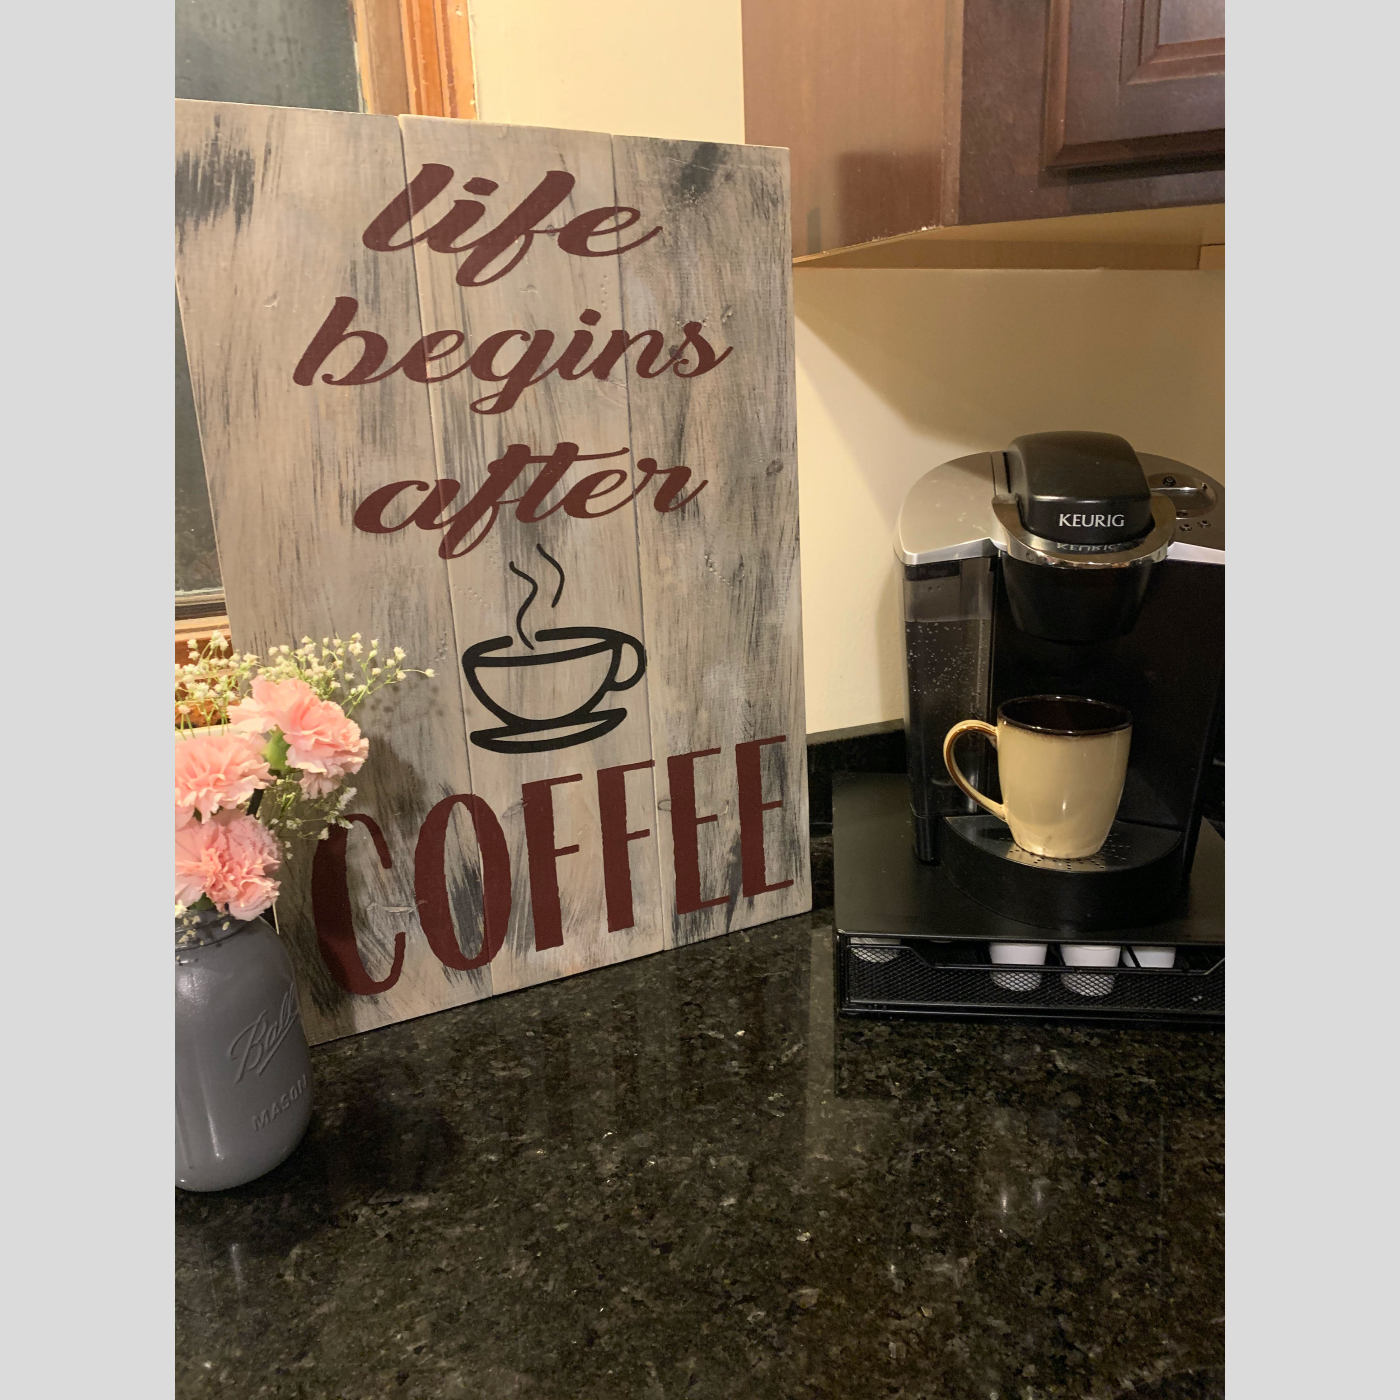 Life Begins After Coffee DIY Wood Sign Bethlehem PA